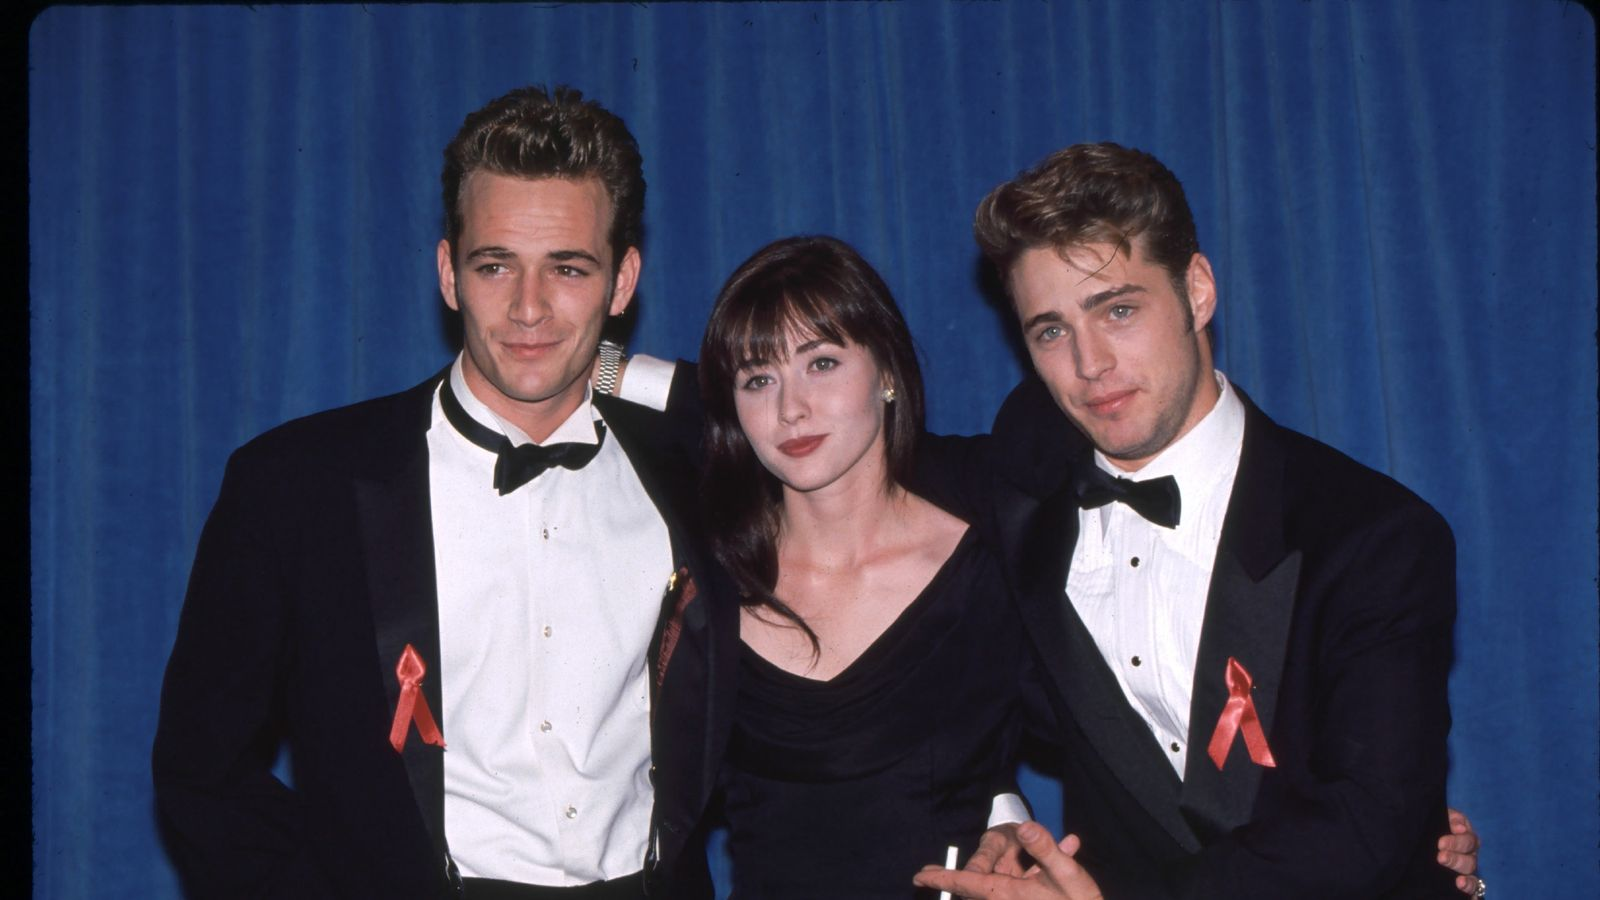 Luke Perry: Beverly Hills 90210 star Shannen Doherty to